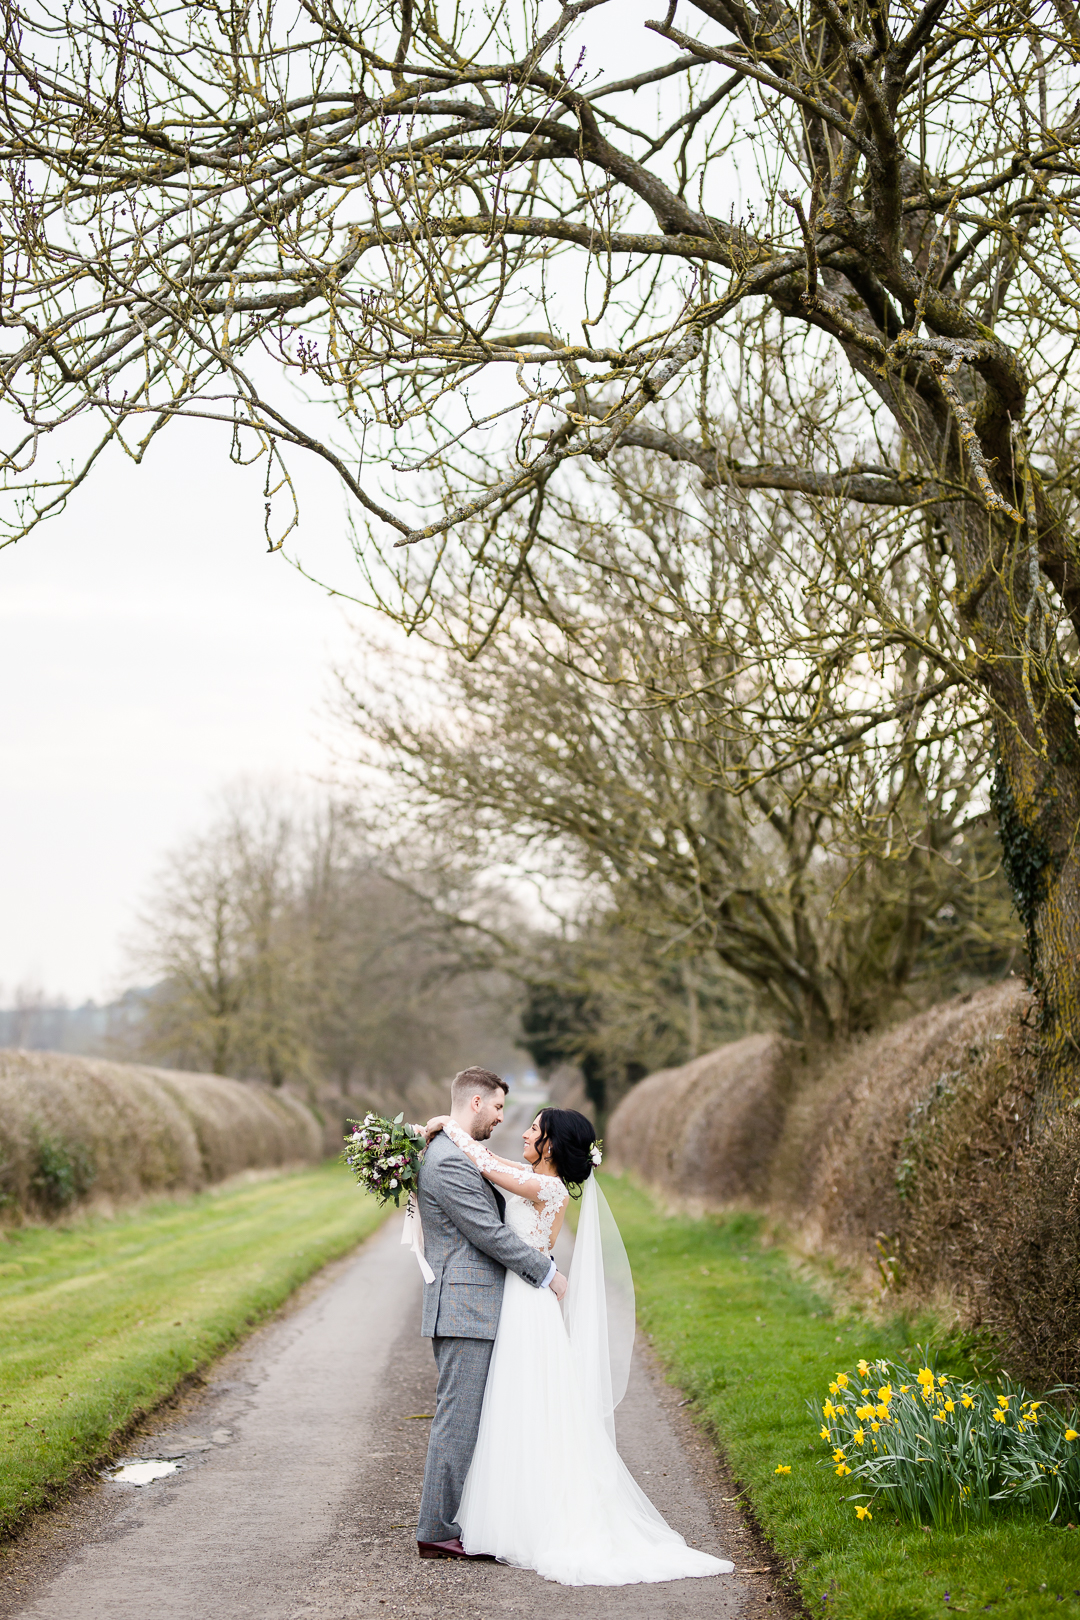 bride and groom hug in a lane under an arch of trees with daffodils